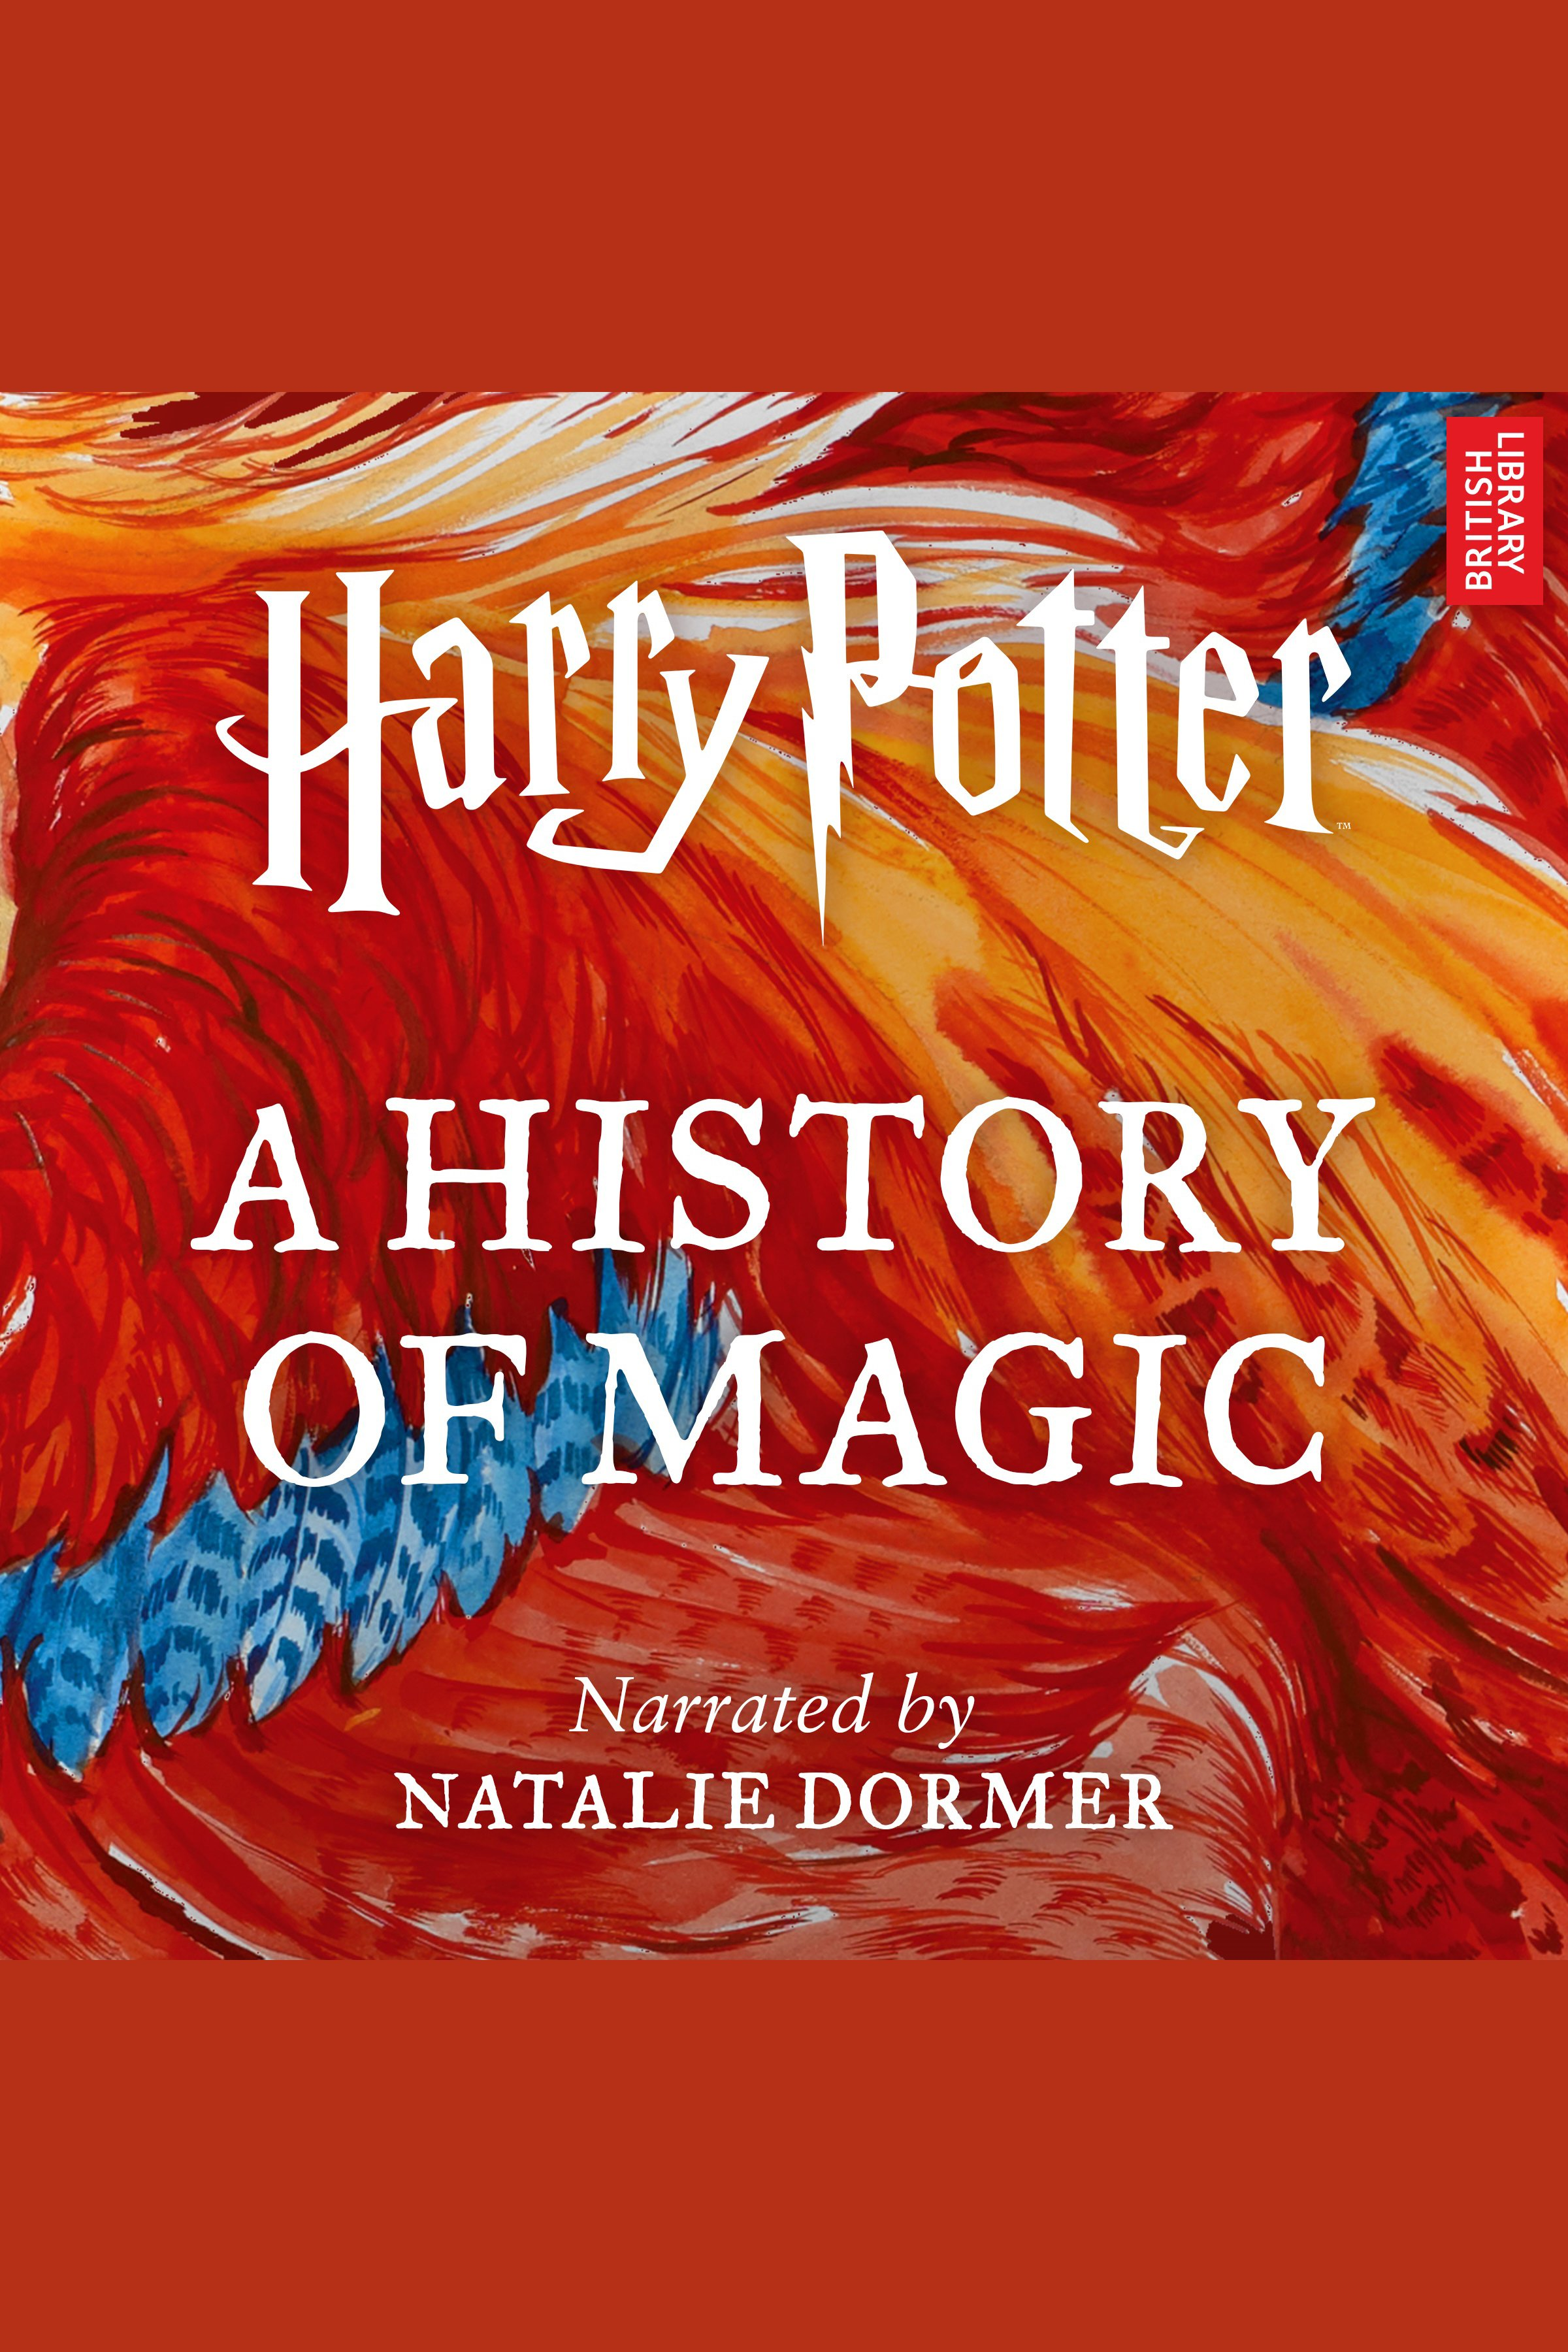 Harry Potter a history of magic cover image